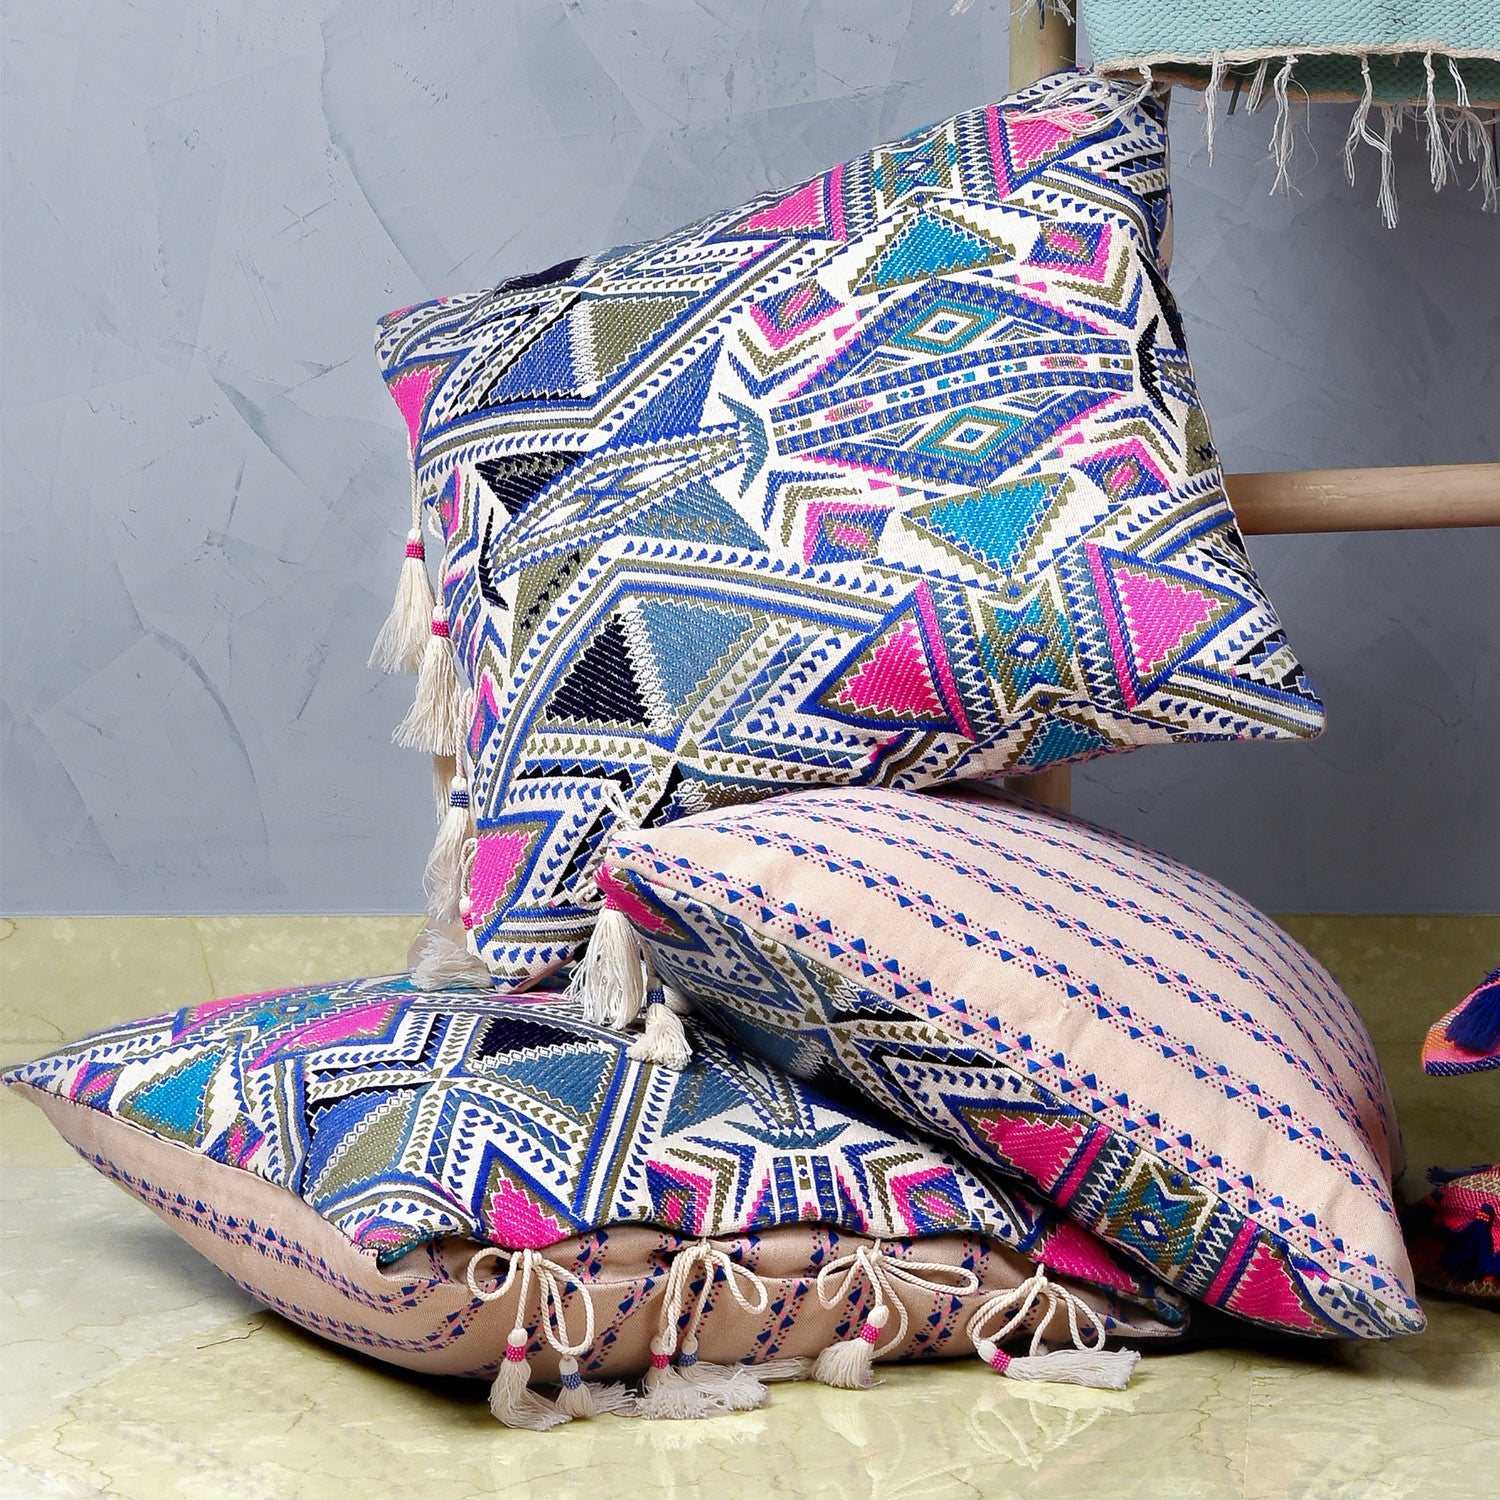 Bedouin-style pink, blue & white cotton tasselled cushion - Bivain - 3